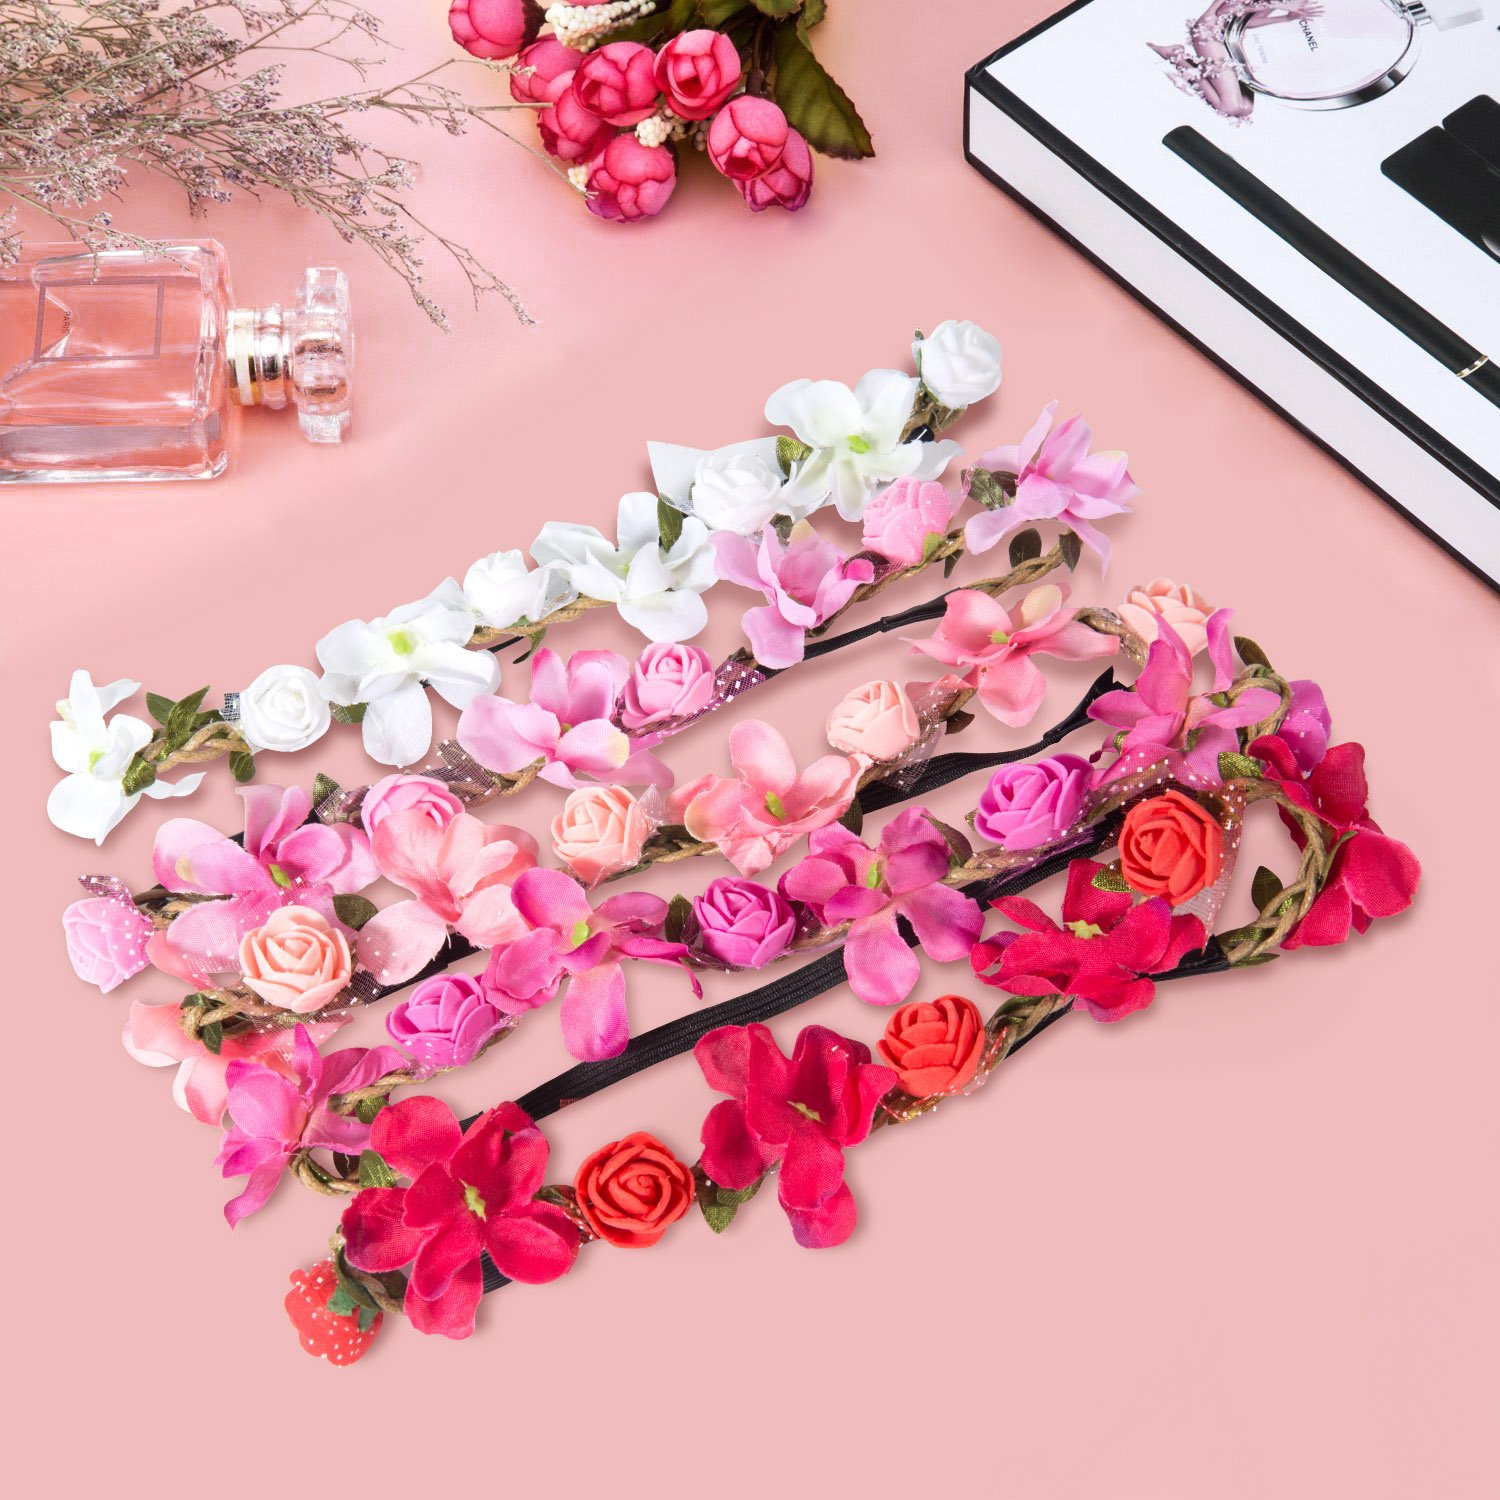 6 ZWOOS 4 Pieces Flower Headband with Elastic Ribbon Floral Garland for Festival Wedding Party Flower Headband Crown